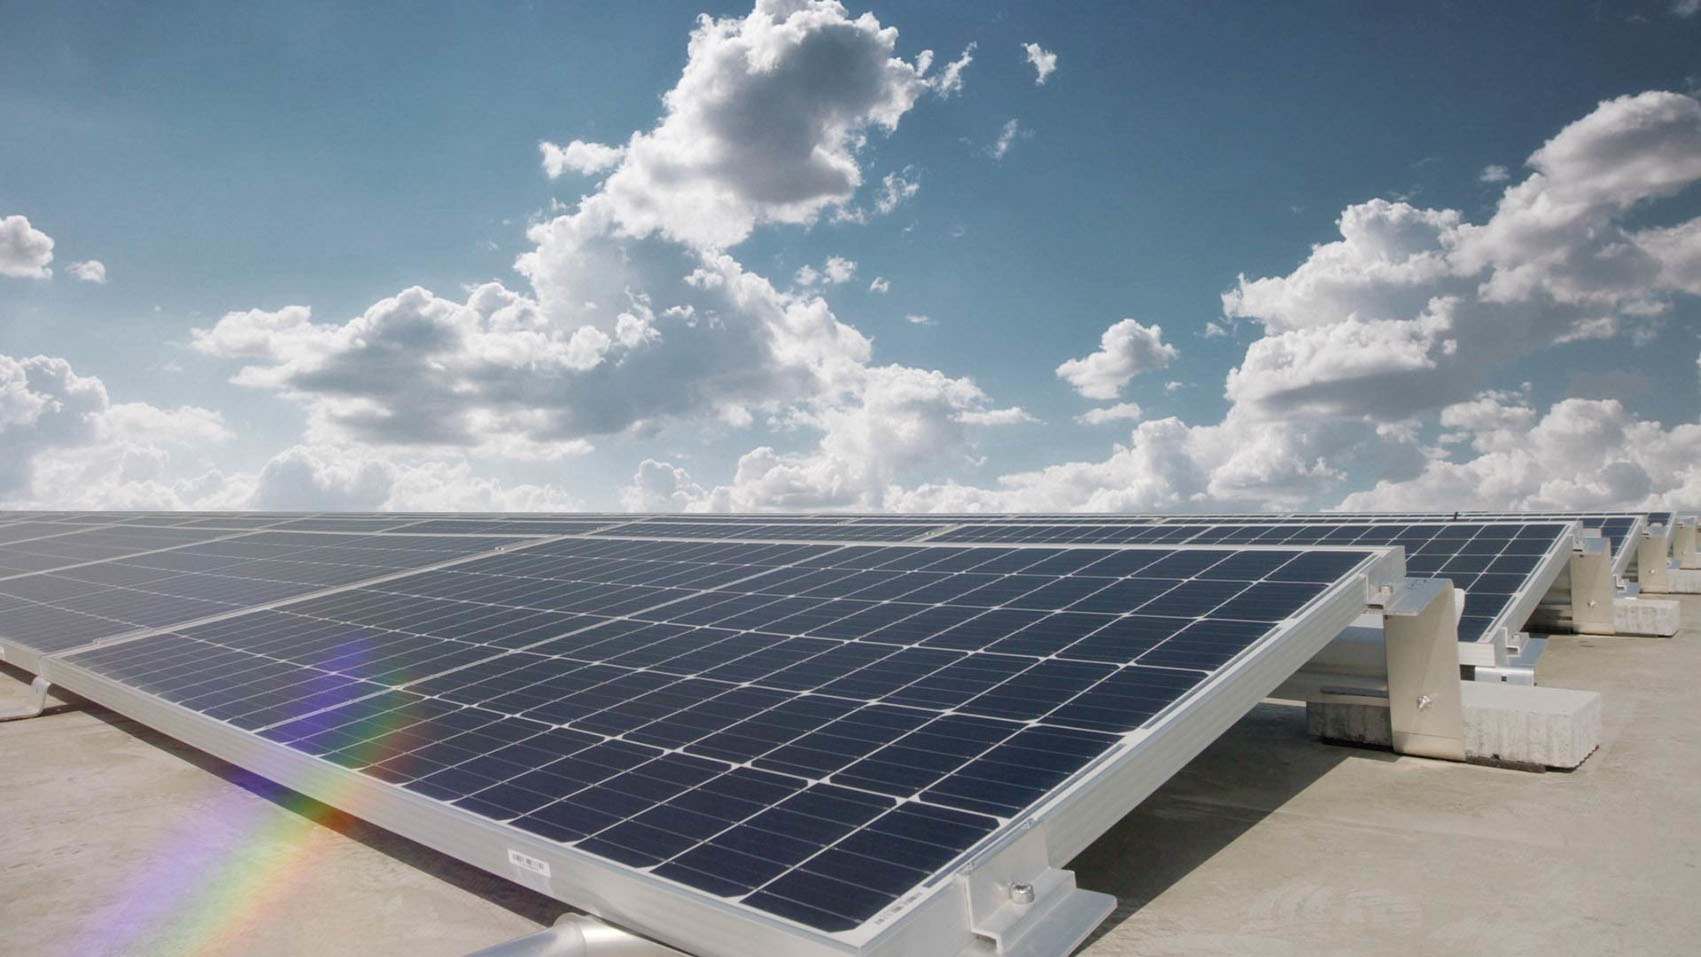 Audi Hungaria: Photovoltaic system on the roofs of the two logis